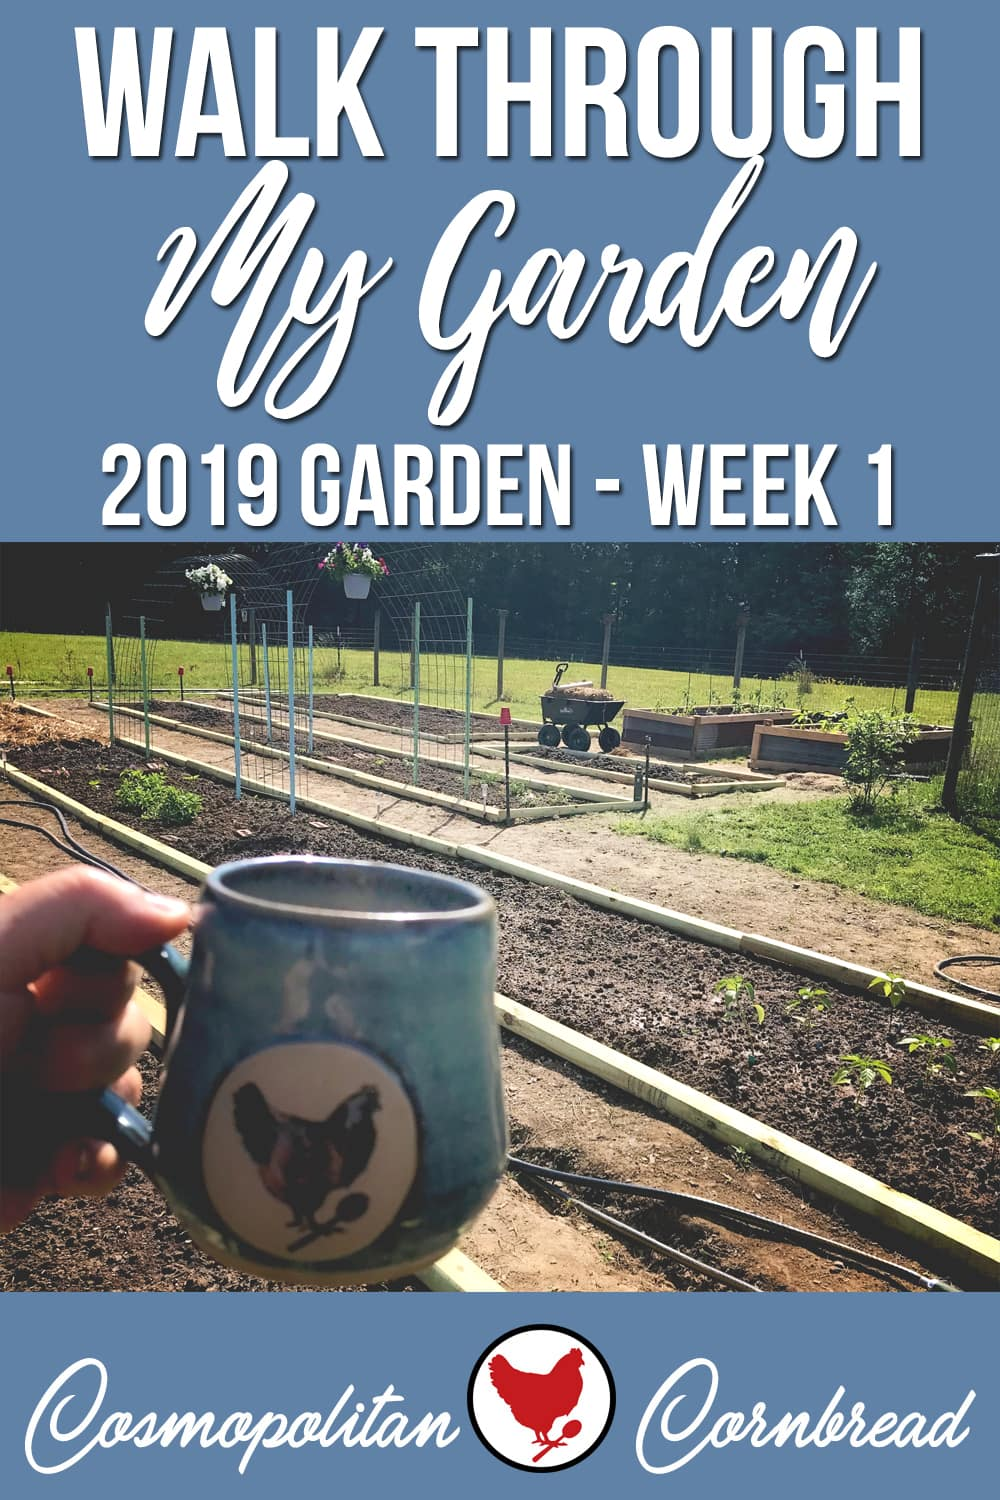 The garden is a week in. Let's take a walk through and see what I have planted in the main garden, and how it is laid out.